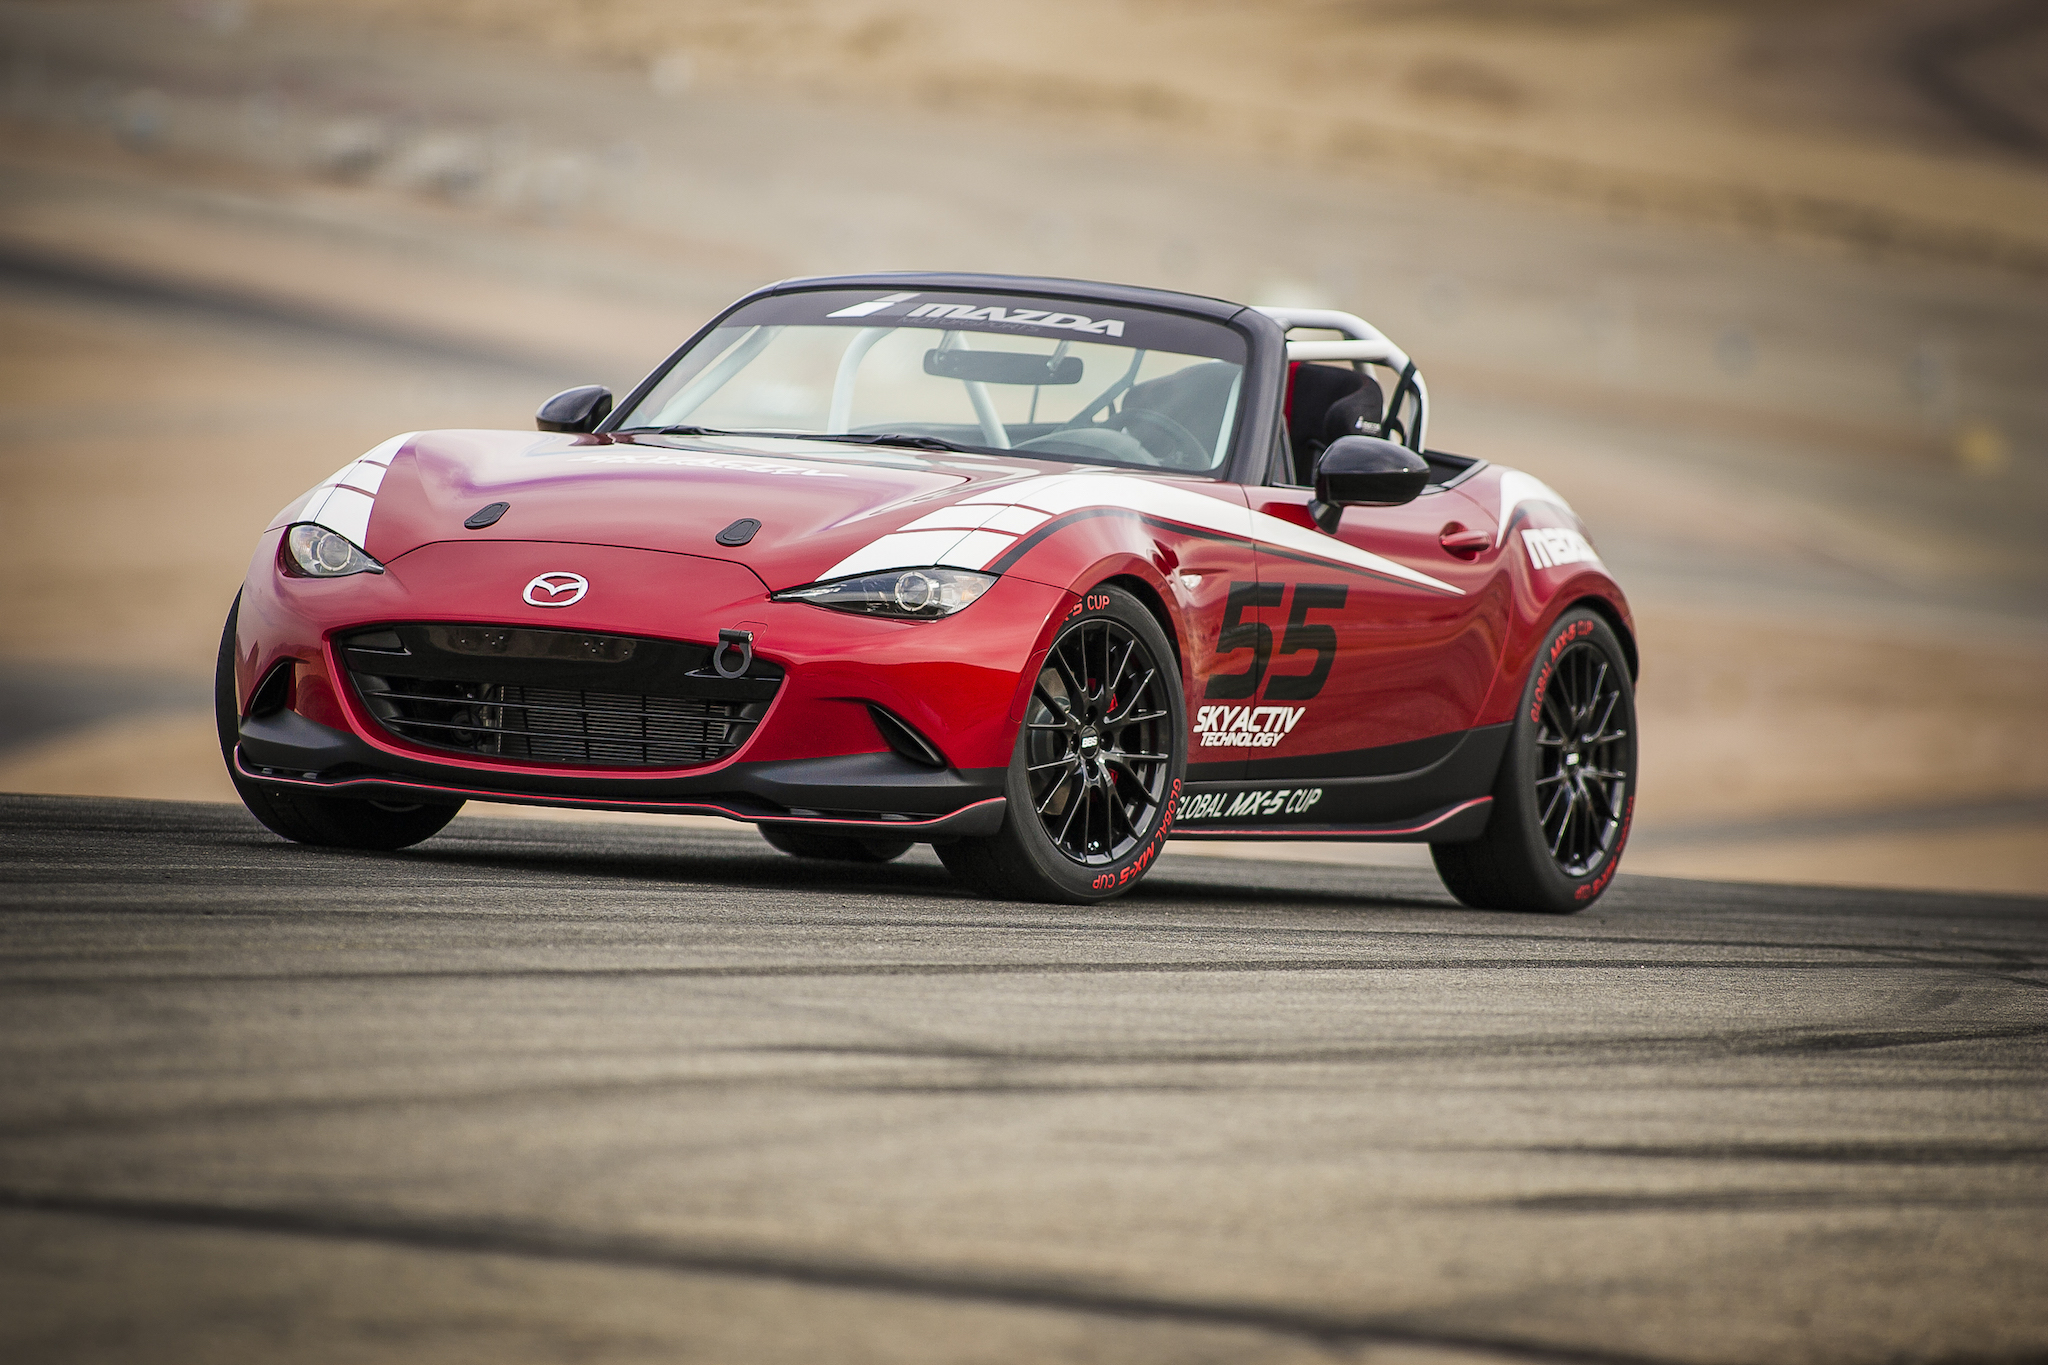 Win Mazda's new iRacing challenge to get a test in an MX-5 race car